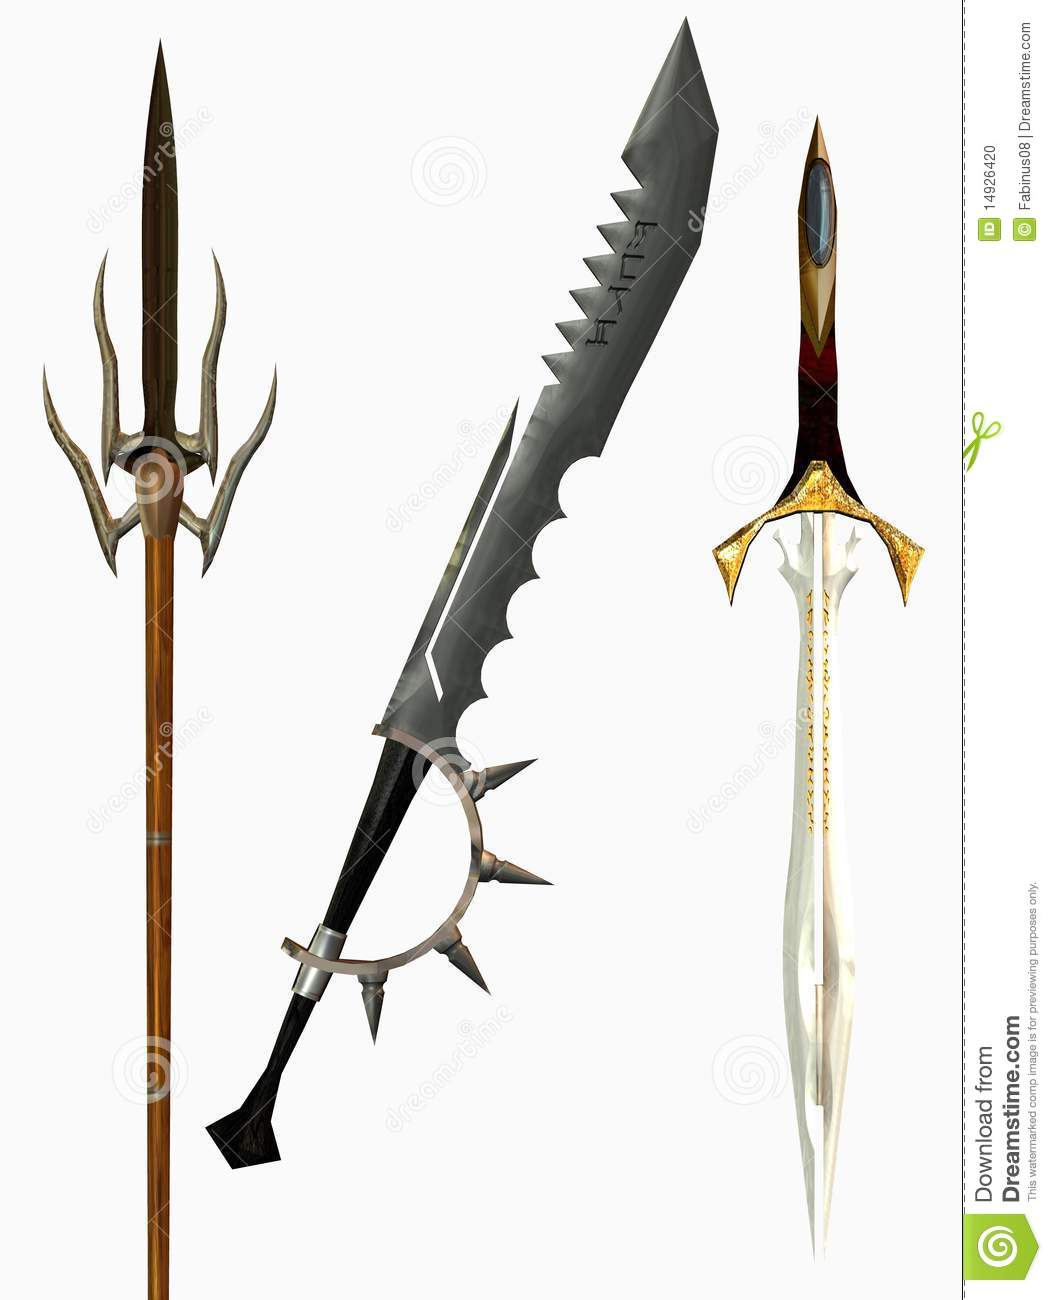 Medieval swords stock illustration. - 70.9KB